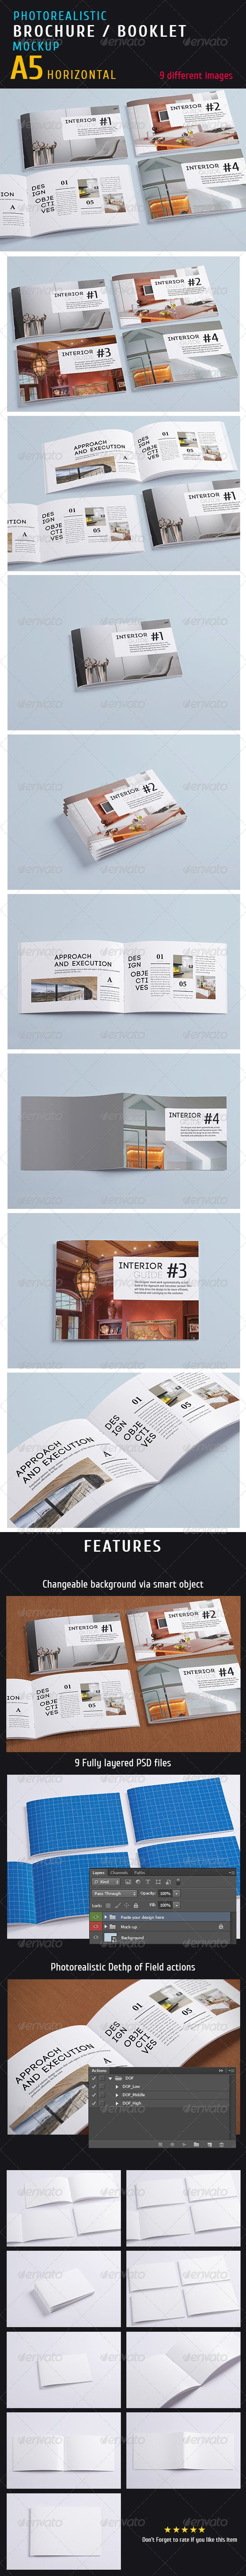 Photorealistic a5 Horizontal Magazine Mock-up  #GraphicRiver        Photorealistic a5 Horizontal Magazine Mock-up Based on smart objects. Features:   9 photorealistic presentations;  Photoshop CS4 compatible;  3000×2000 pixel resolution;  Easy and fast editing via smart objects;  Organizaed Layers and folders;  Changeable background via smart object;      Created: 22August13 GraphicsFilesIncluded: PhotoshopPSD HighResolution: Yes Layered: Yes MinimumAdobeCSVersion: CS4 PixelDimensions…